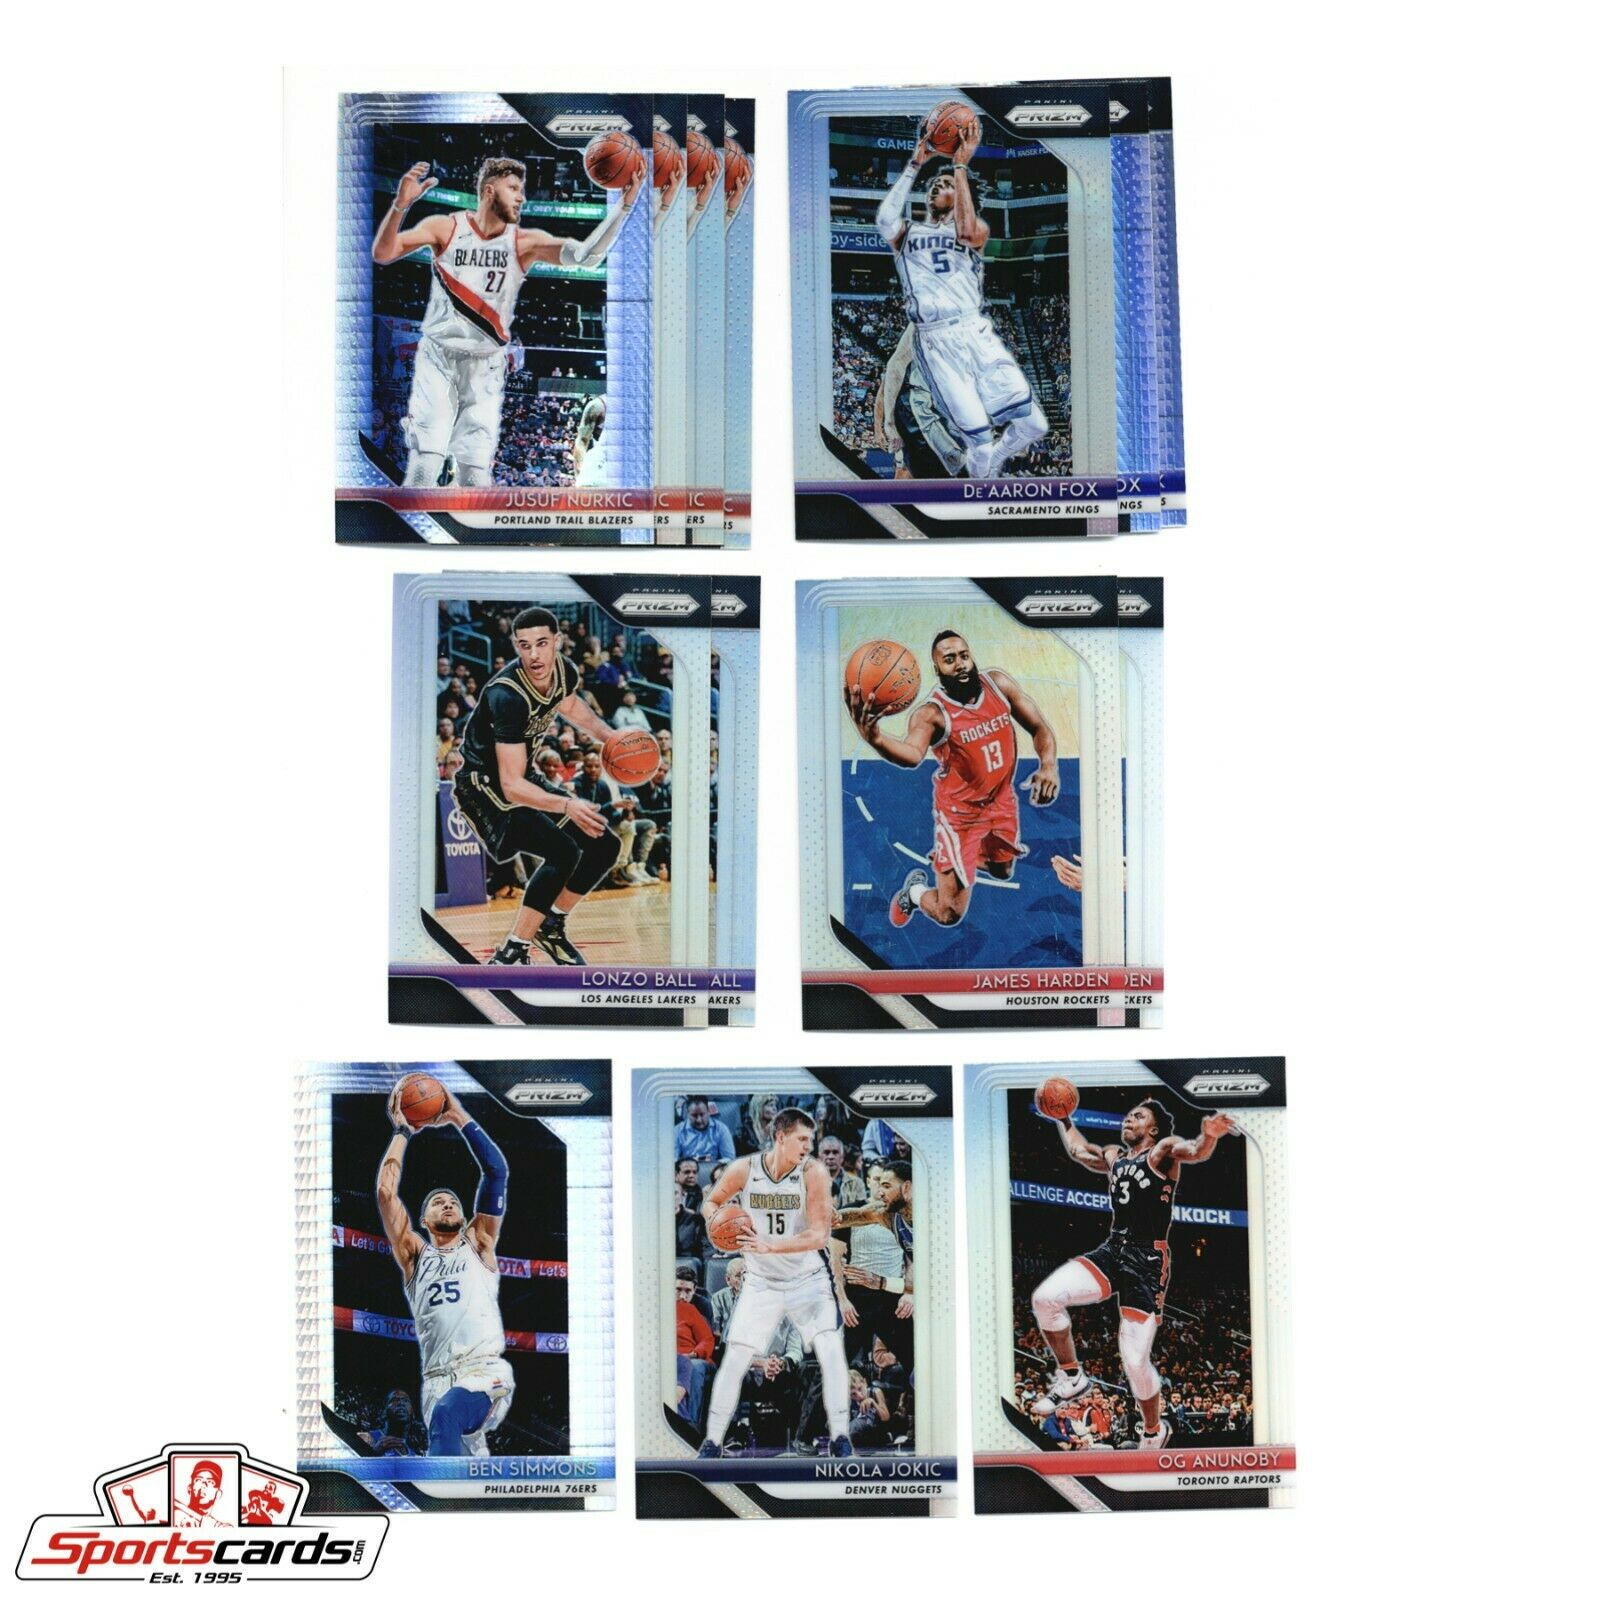 2018-19 Panini Prizm Lot of 32 Cards Bam Booker Ball Harden Chamberlain Dr. J